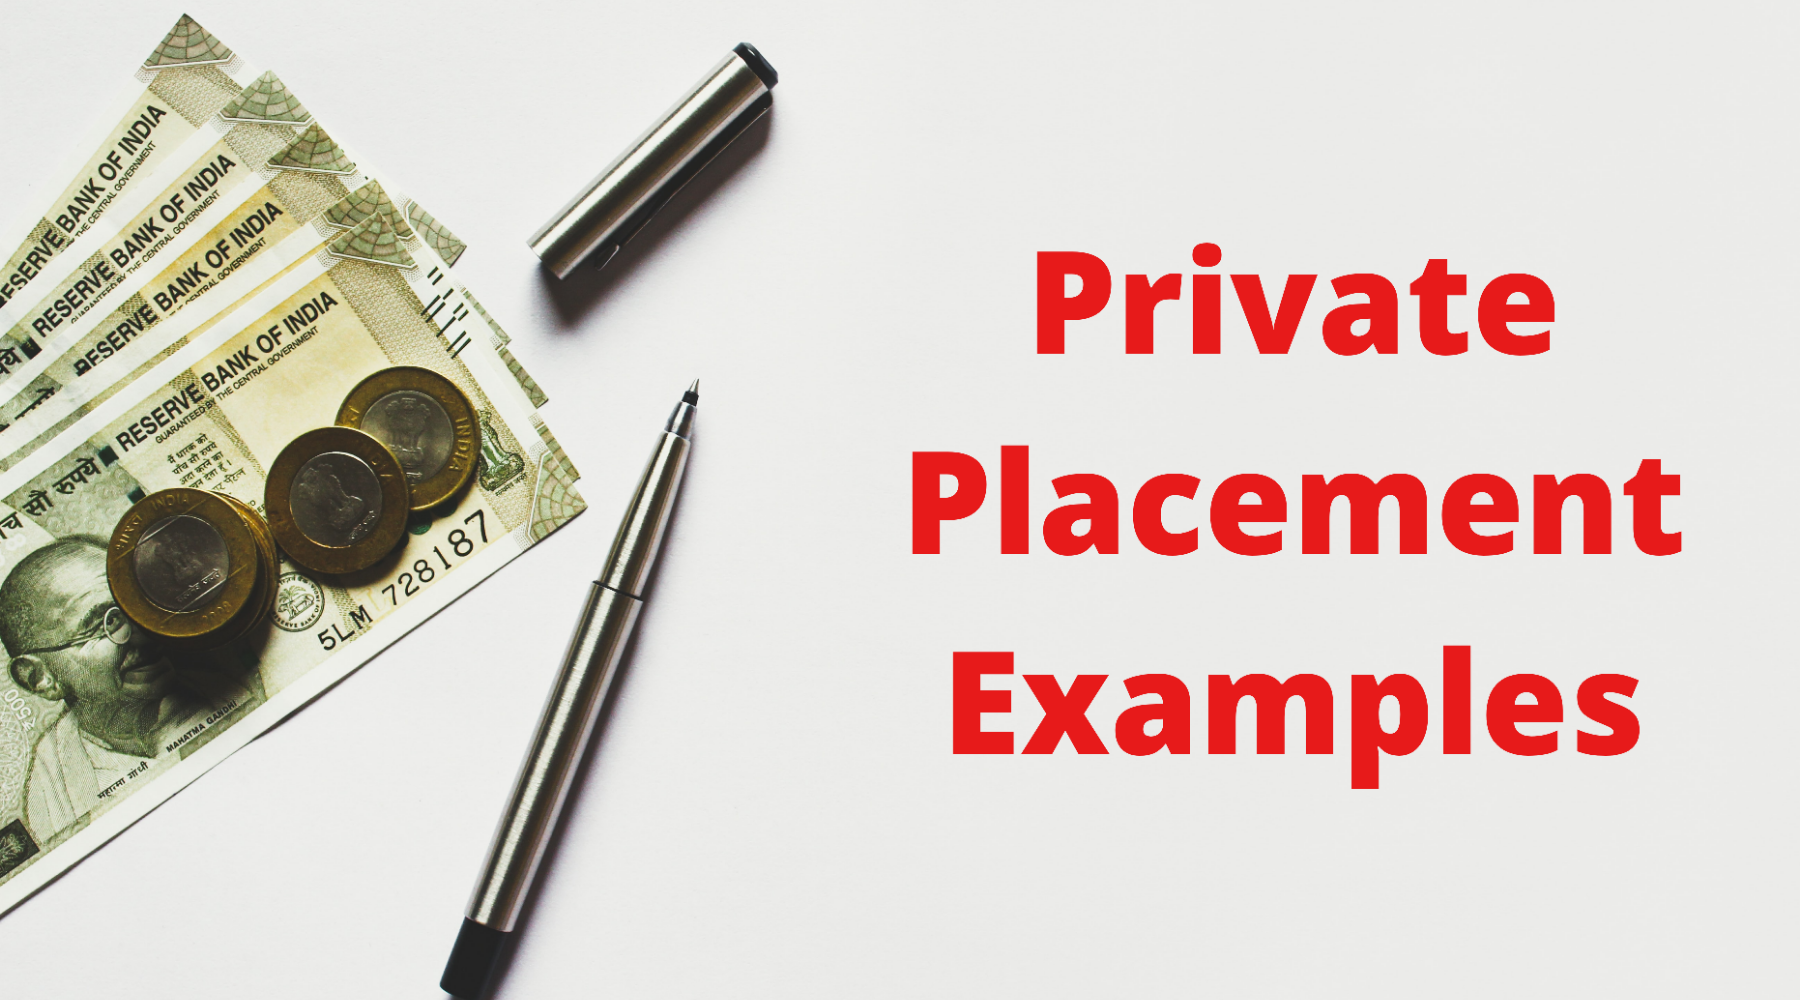 Real-World Private Placement Examples and Their Impact on the Businesses